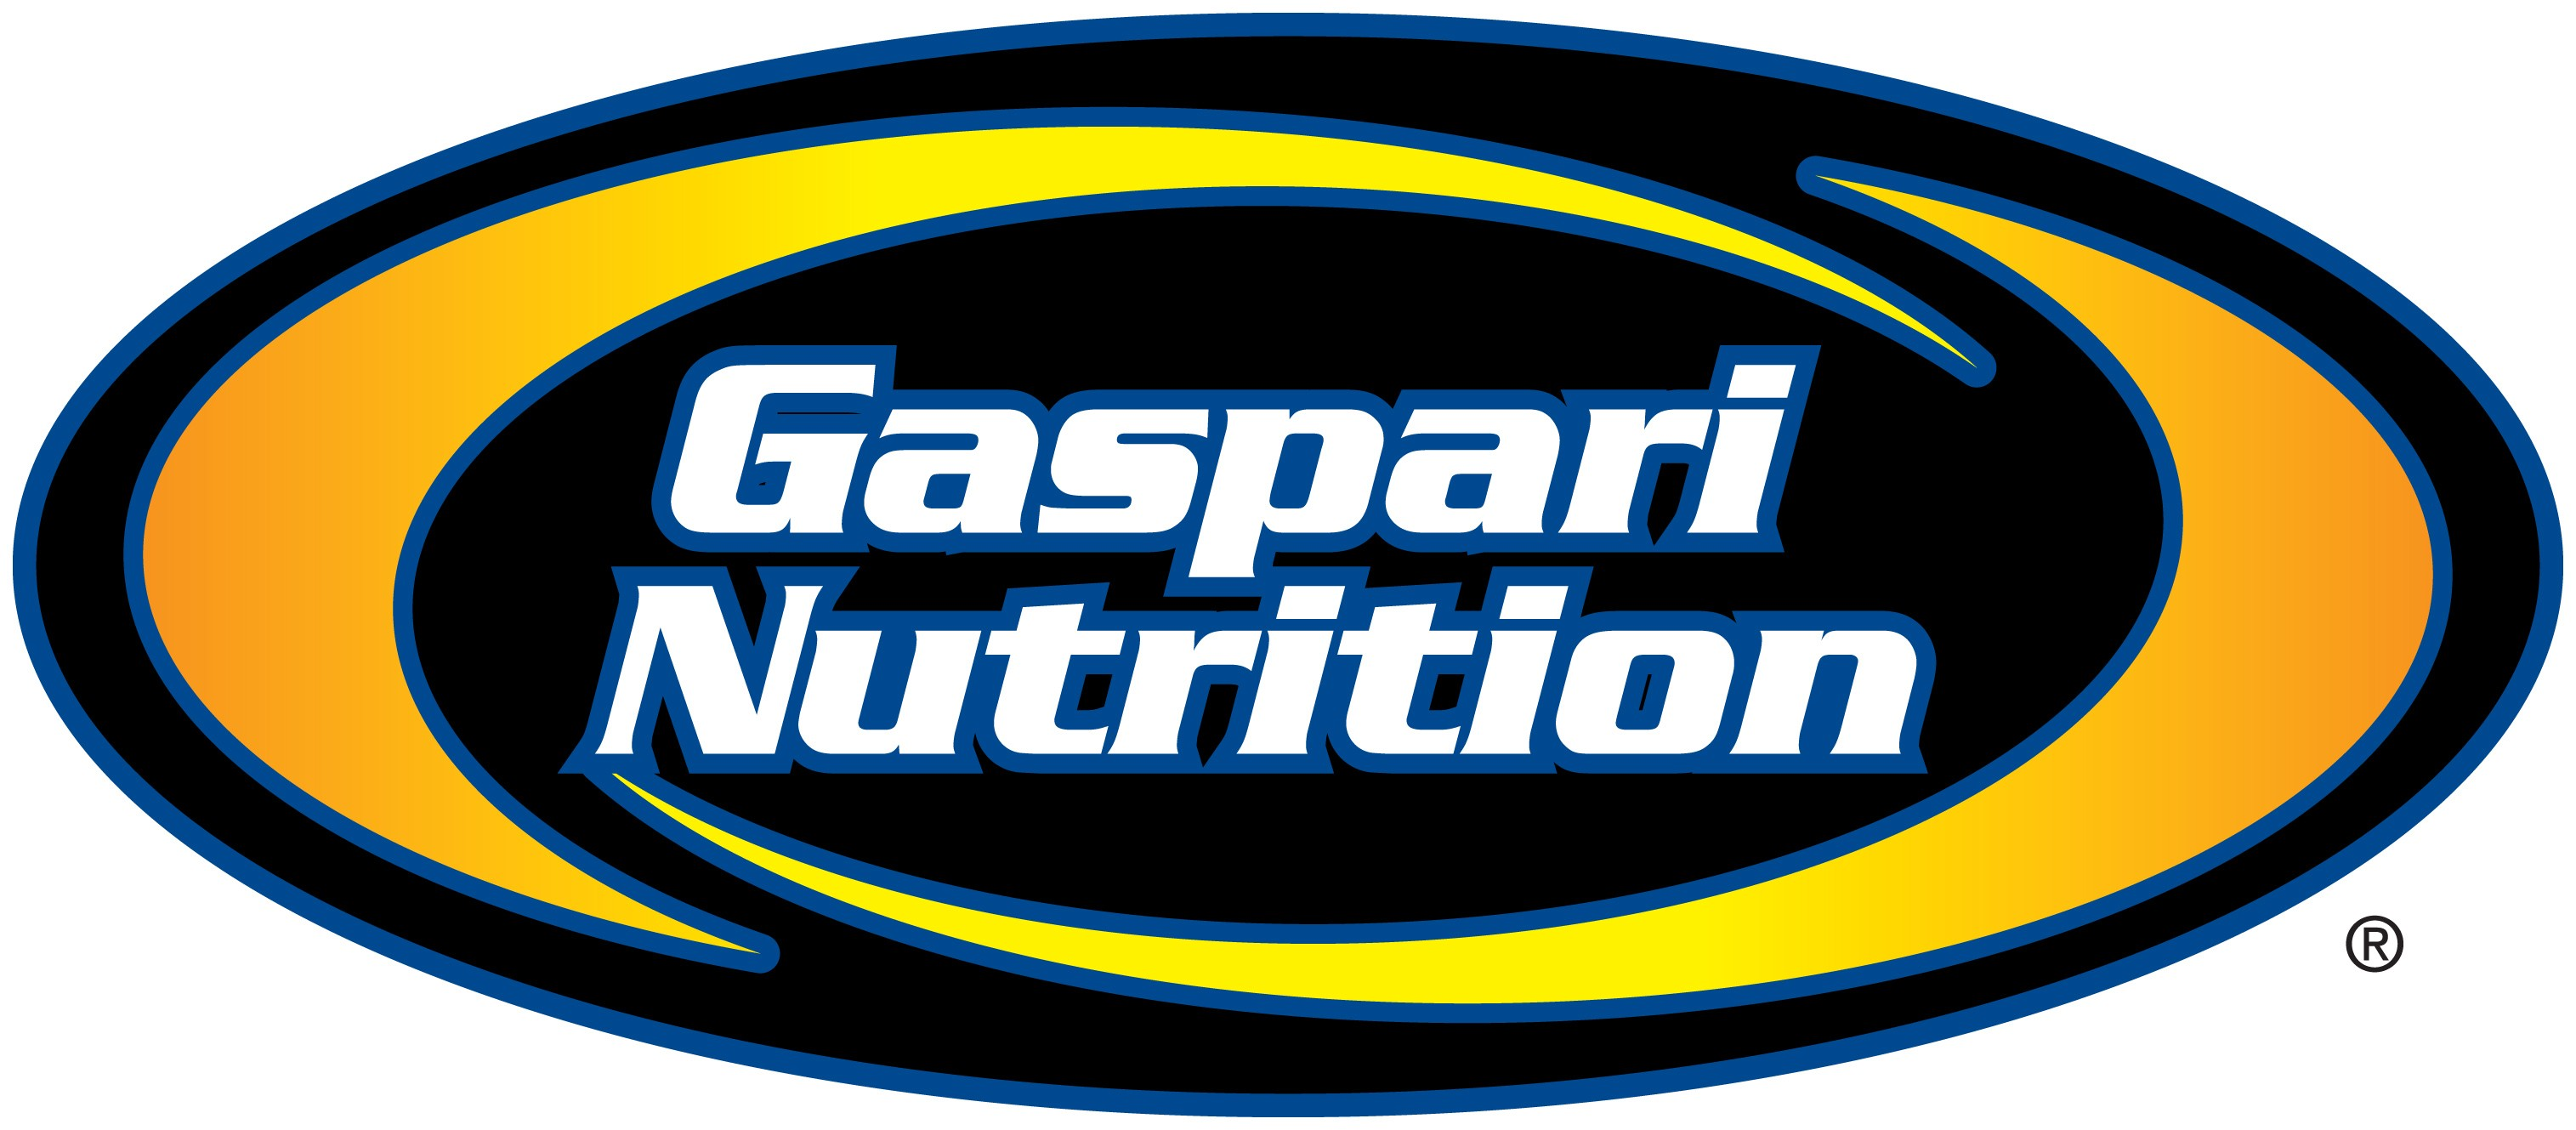 .Gaspari Nurtition